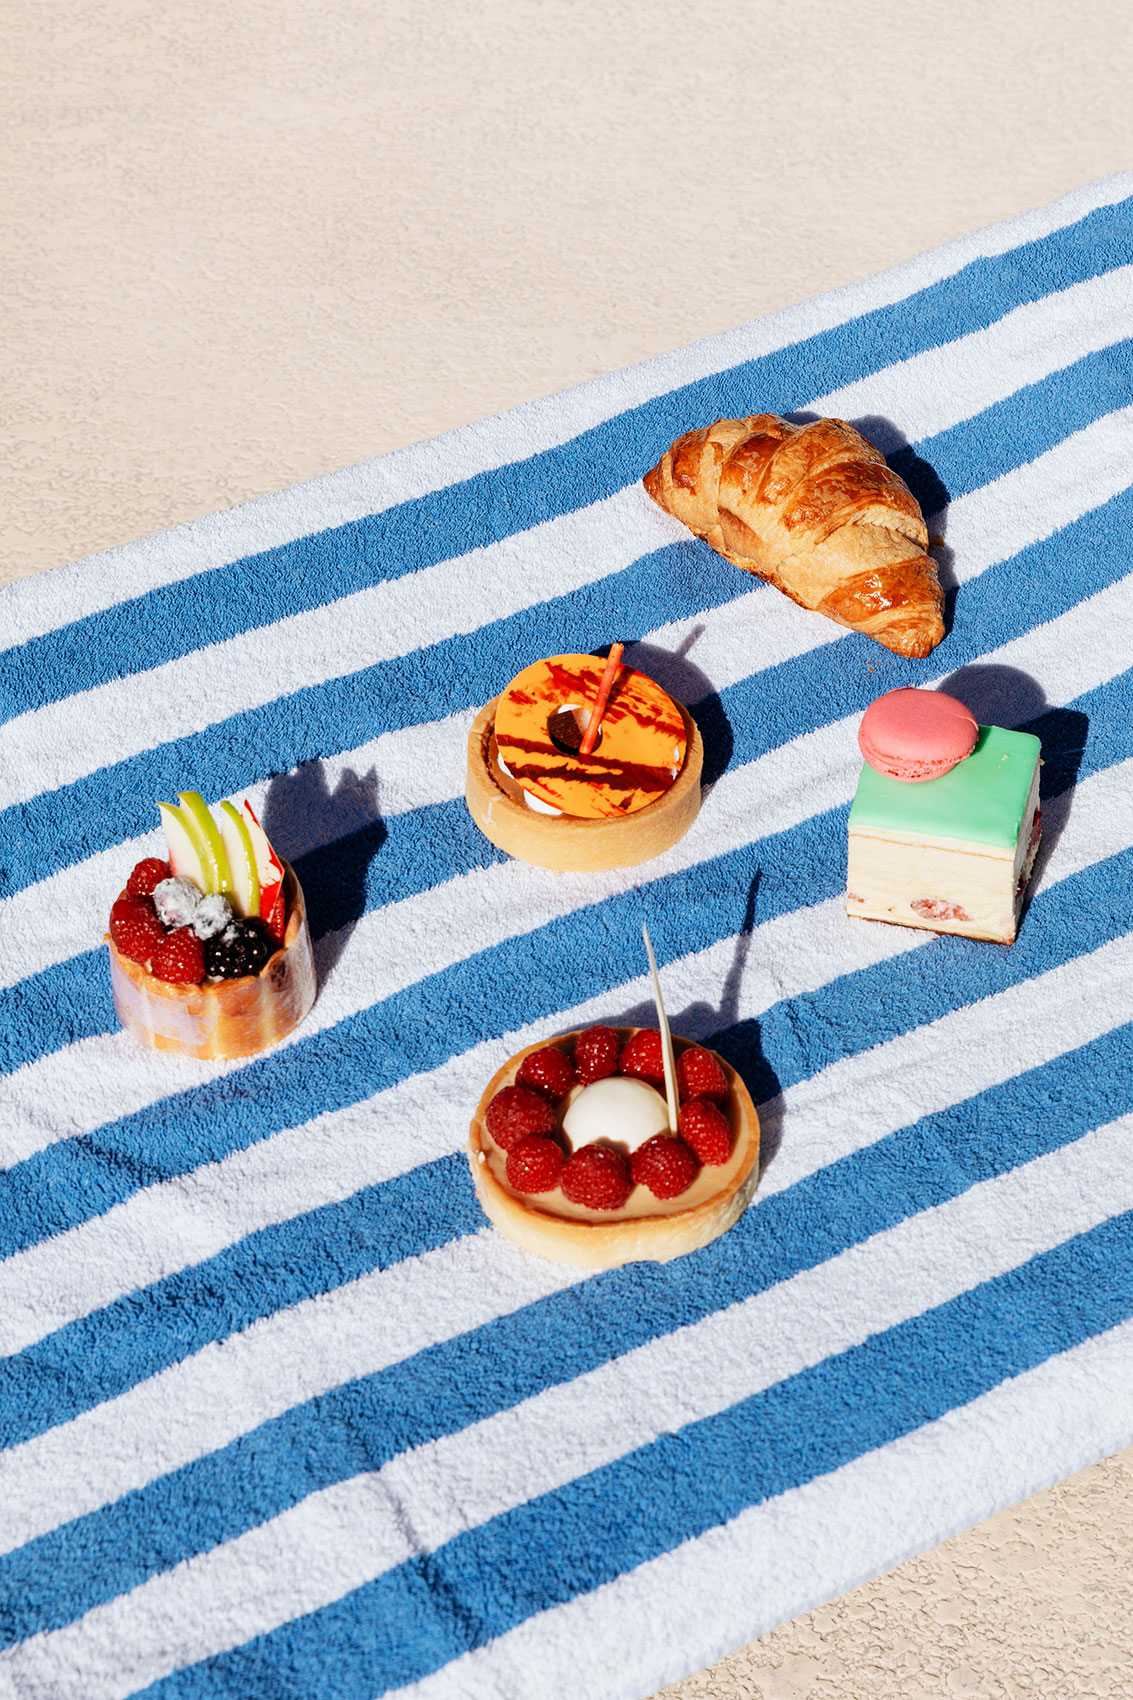 Pastries on a stripped towel. Kimberly Genevieve lifestyle photographer Los Angeles